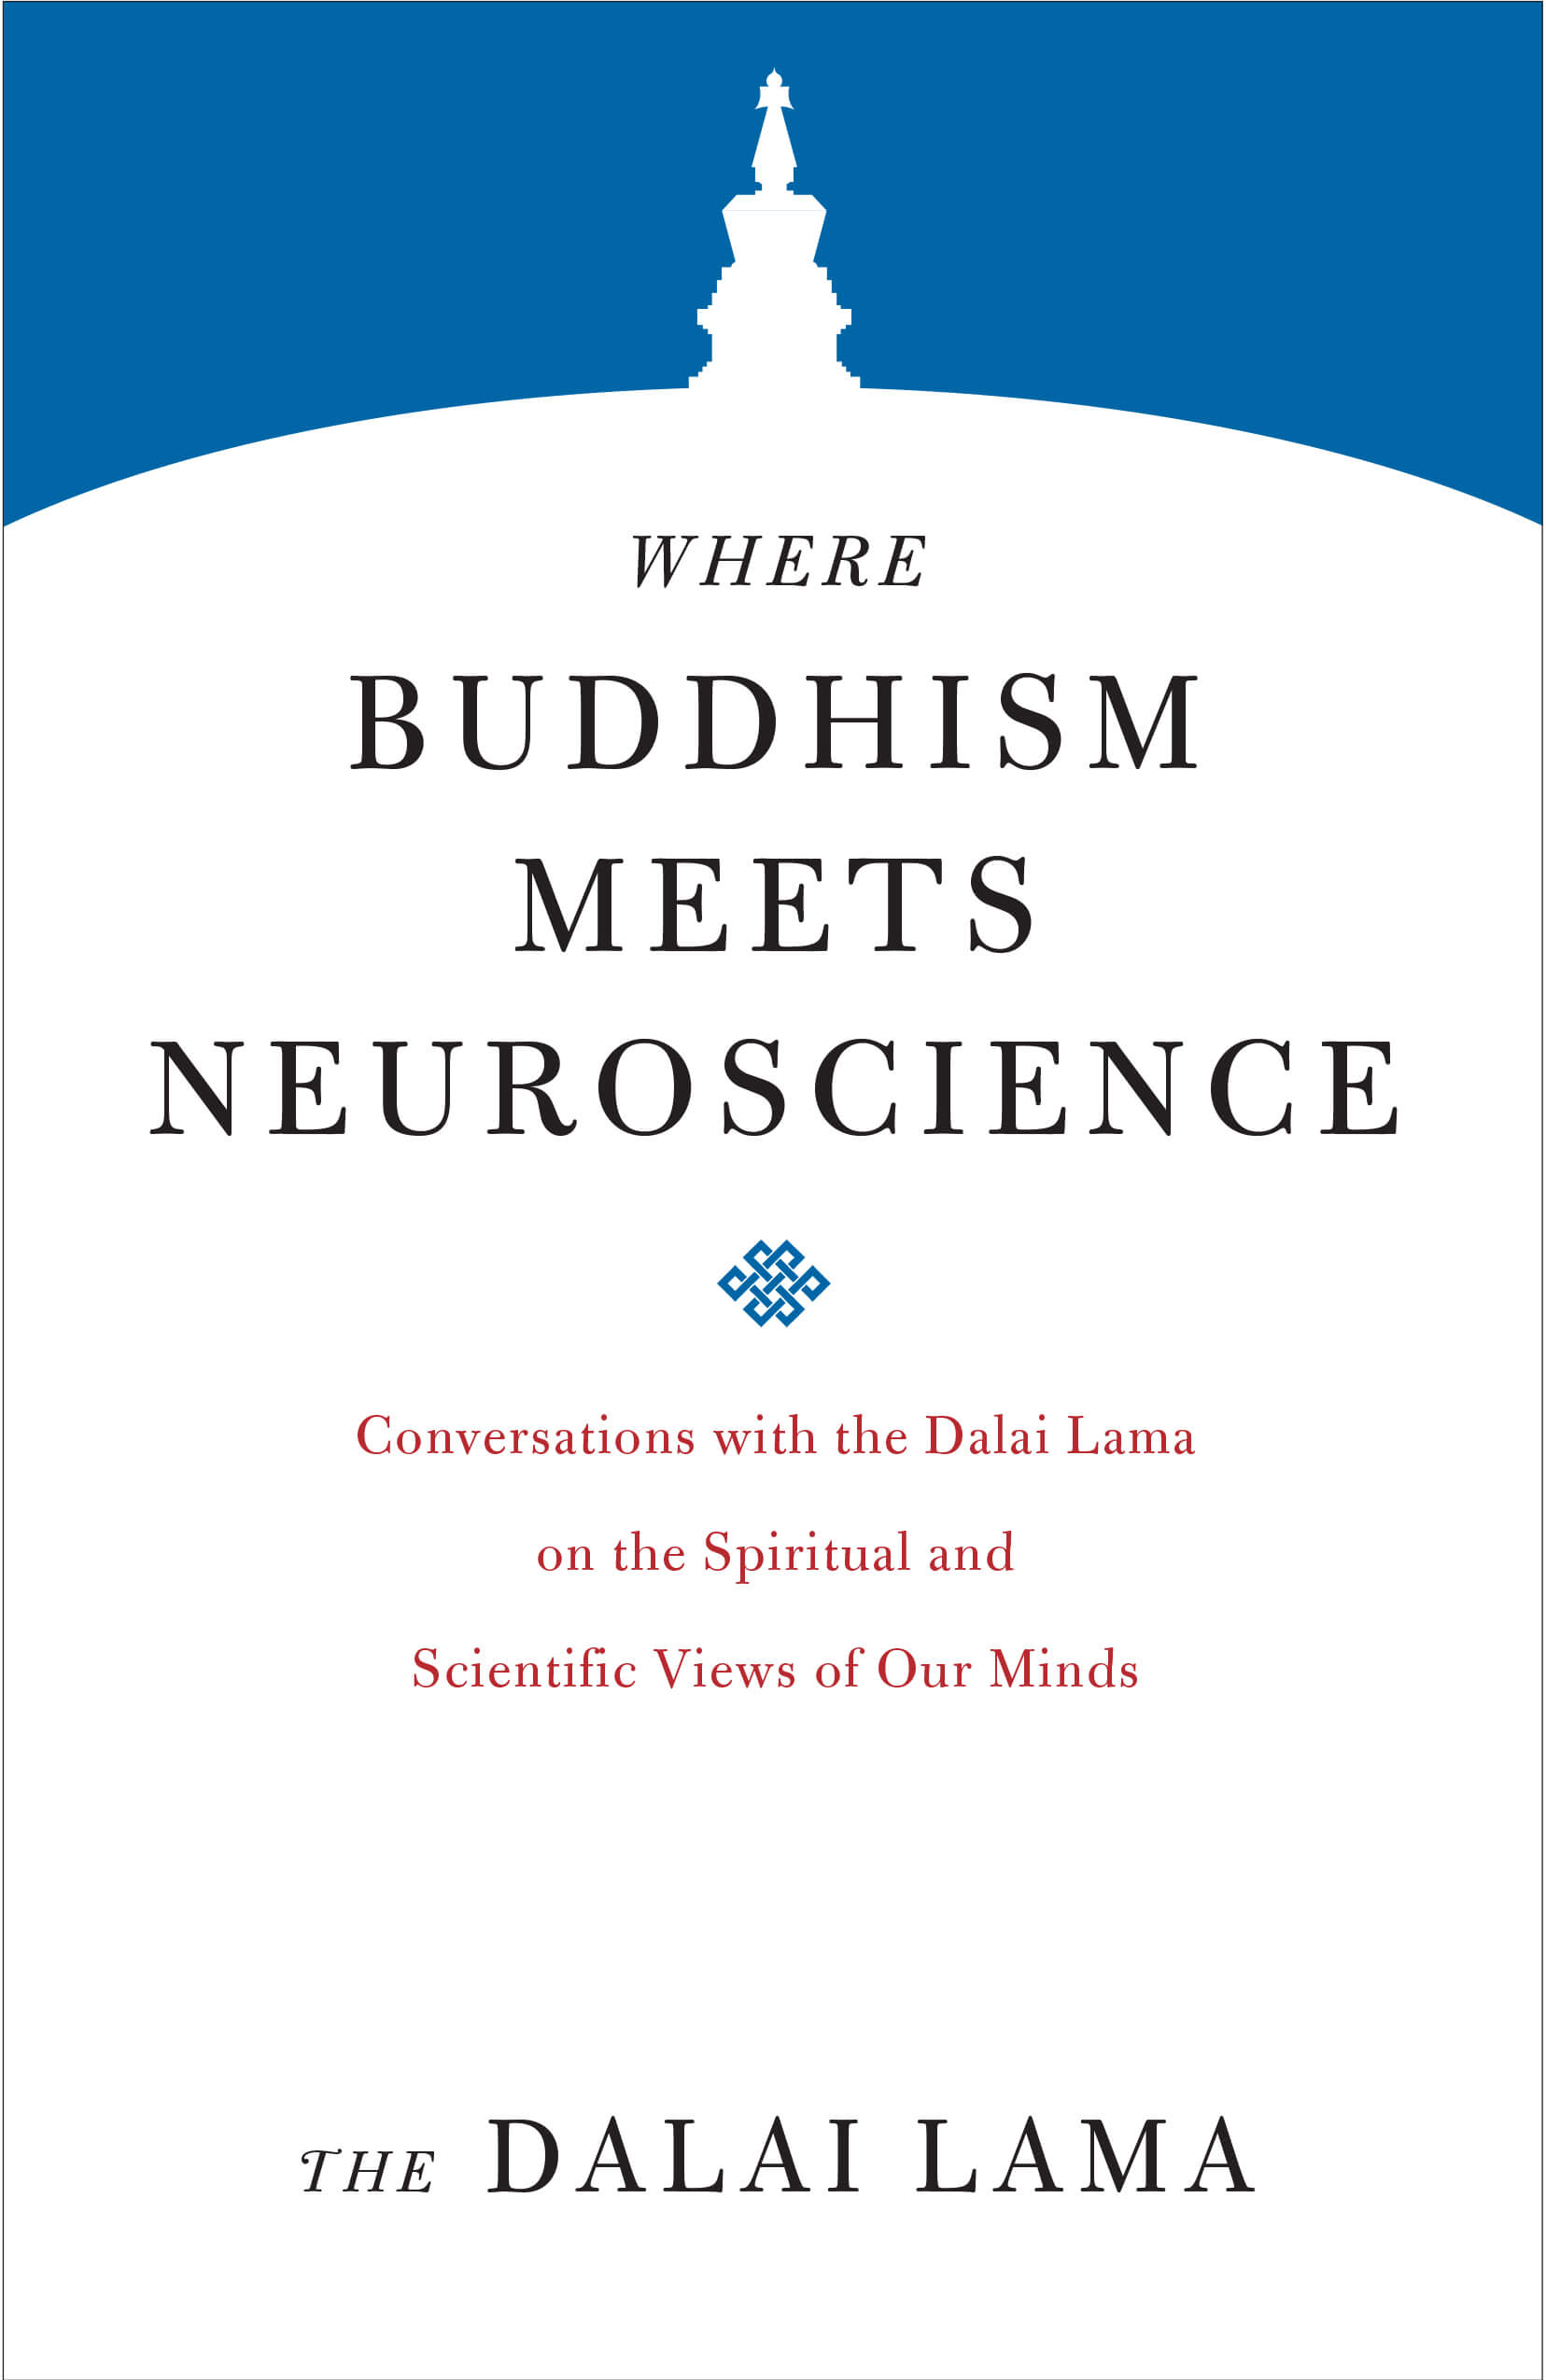 Where Buddhism Meets Neuroscience